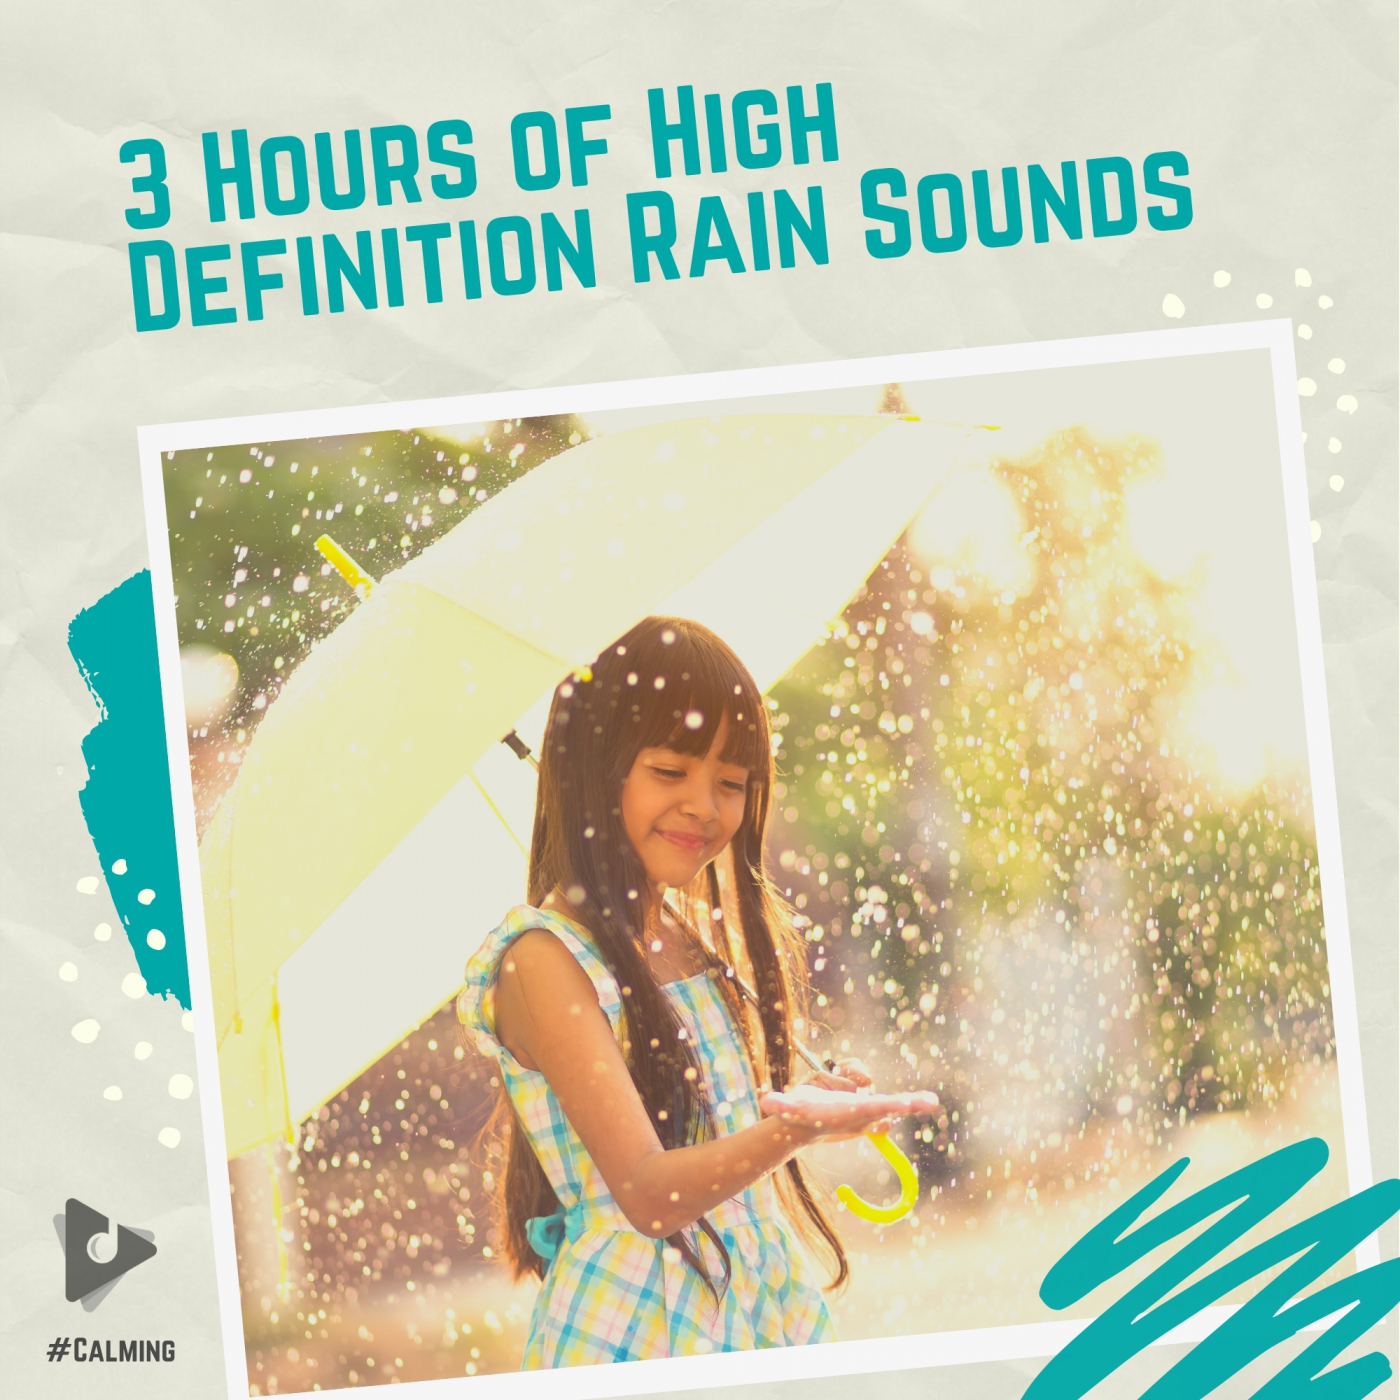 3 Hours of High Definition Rain Sounds